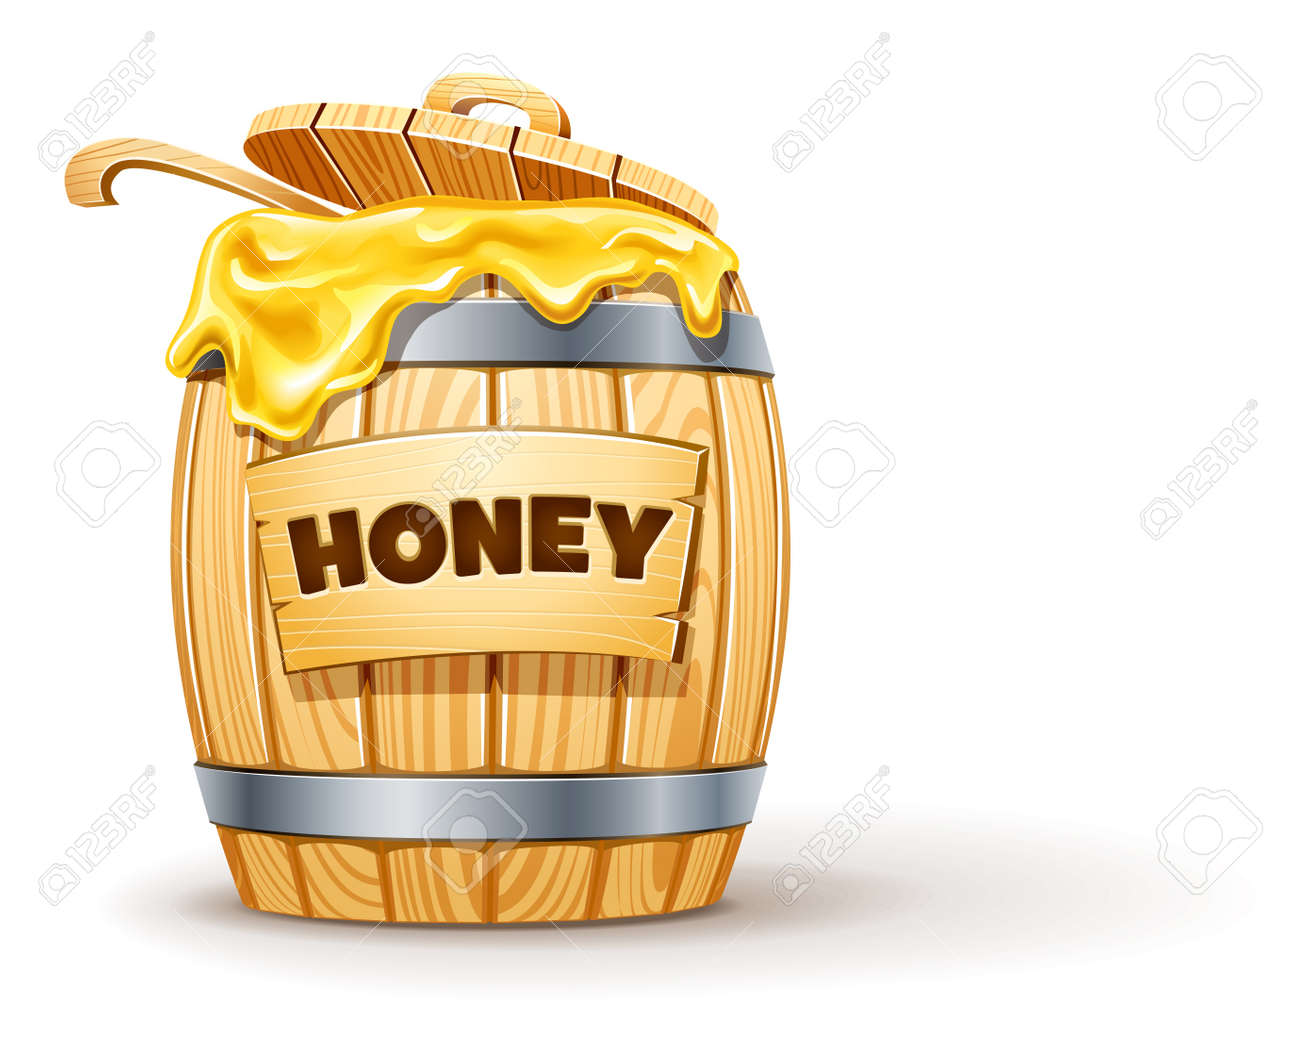 wooden barrel full of honey illustration isolated on white background Stock Vector - 9830124